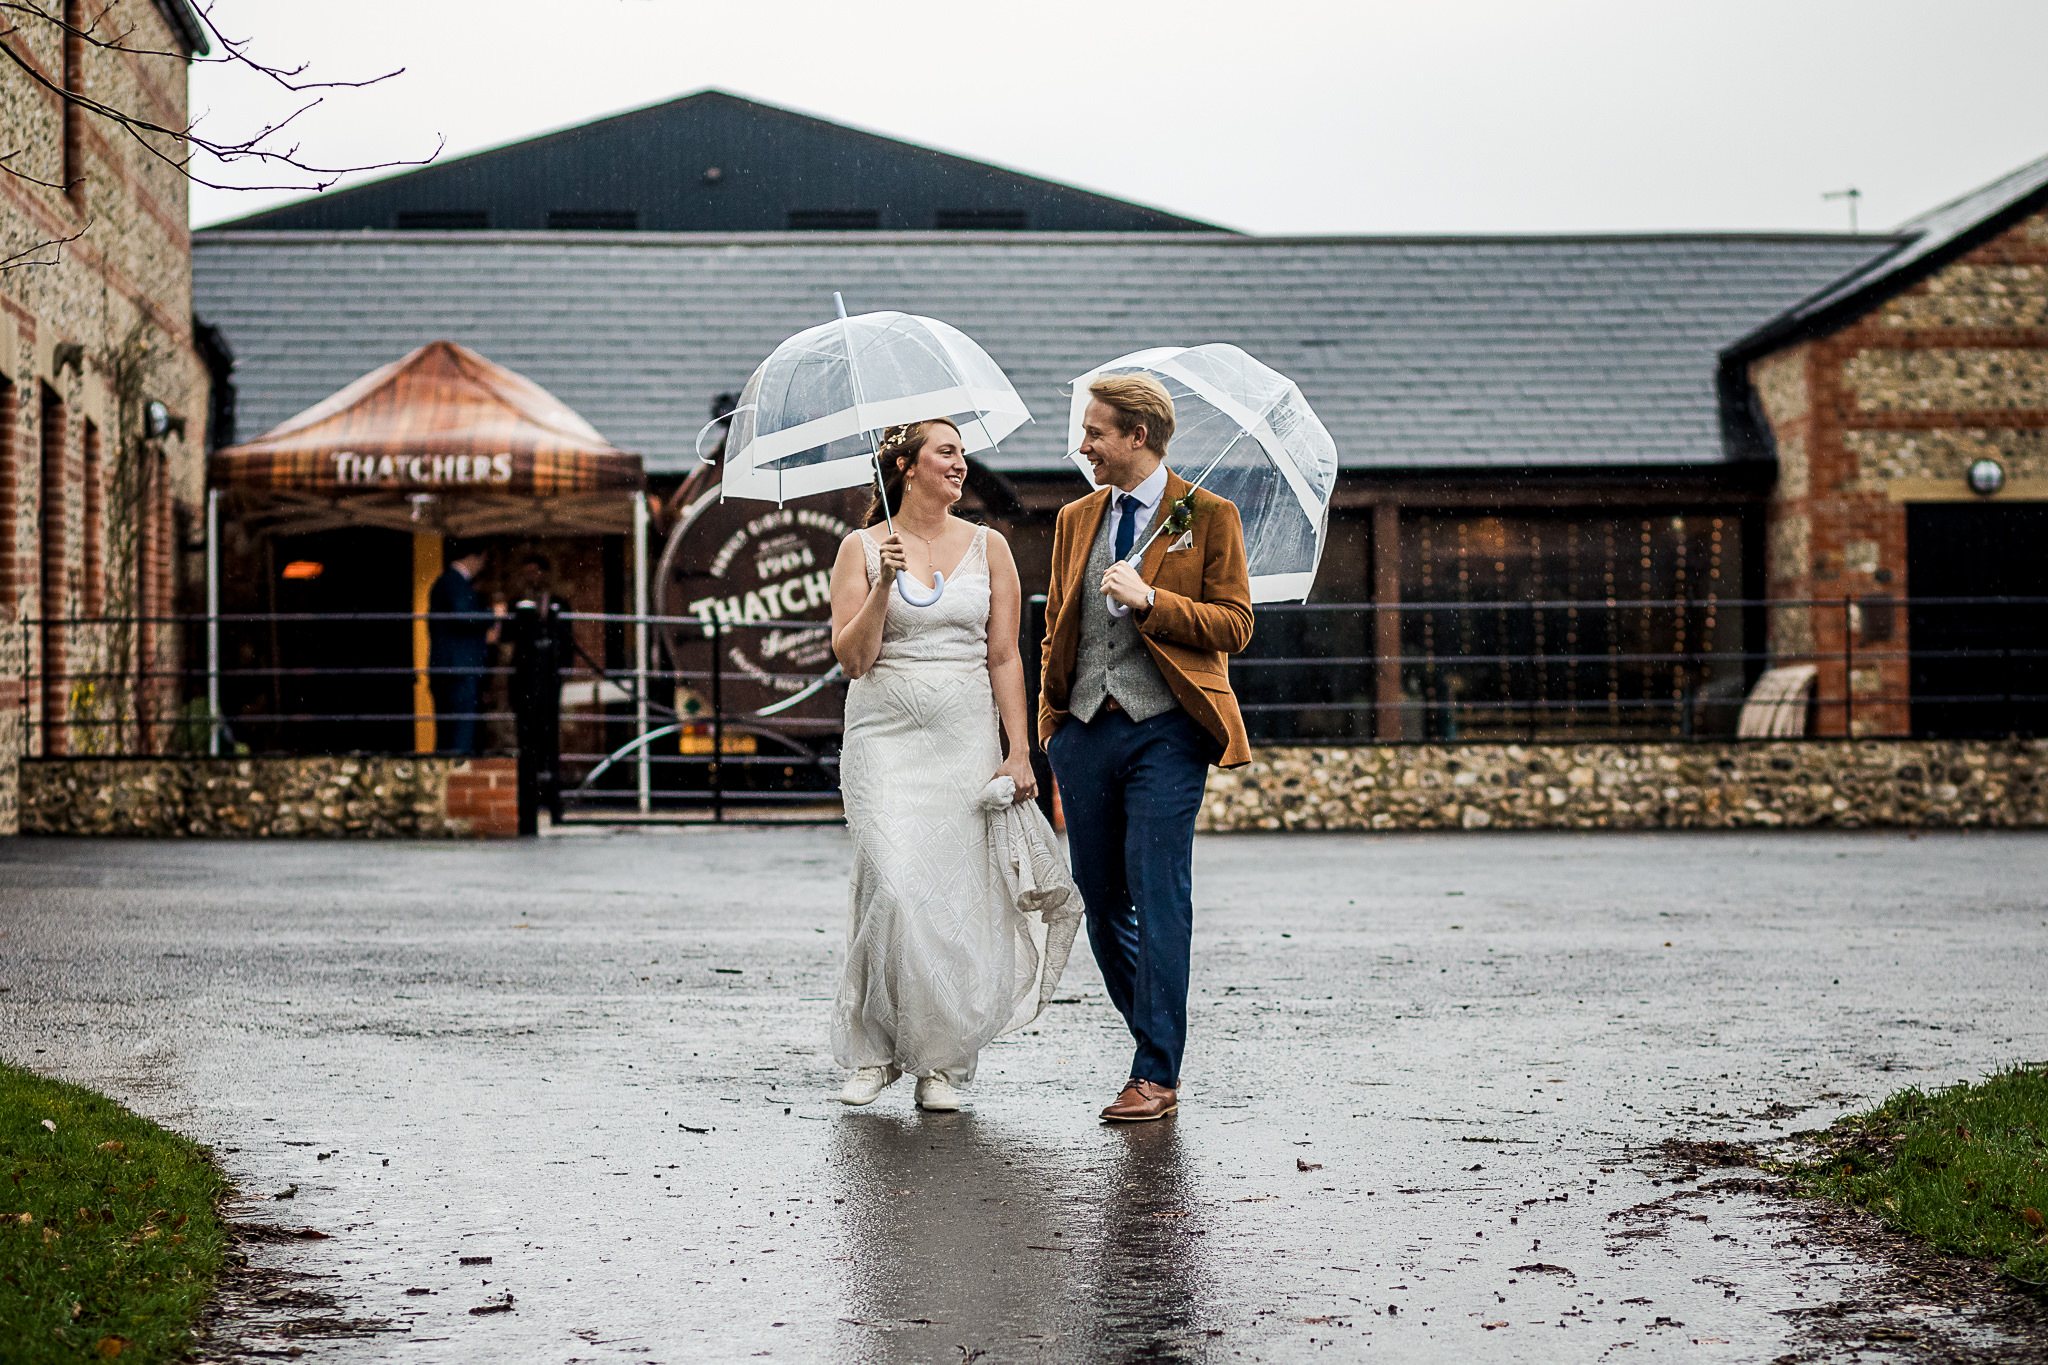 The Gathering Barn Wedding - Art by Design Photography - Couple